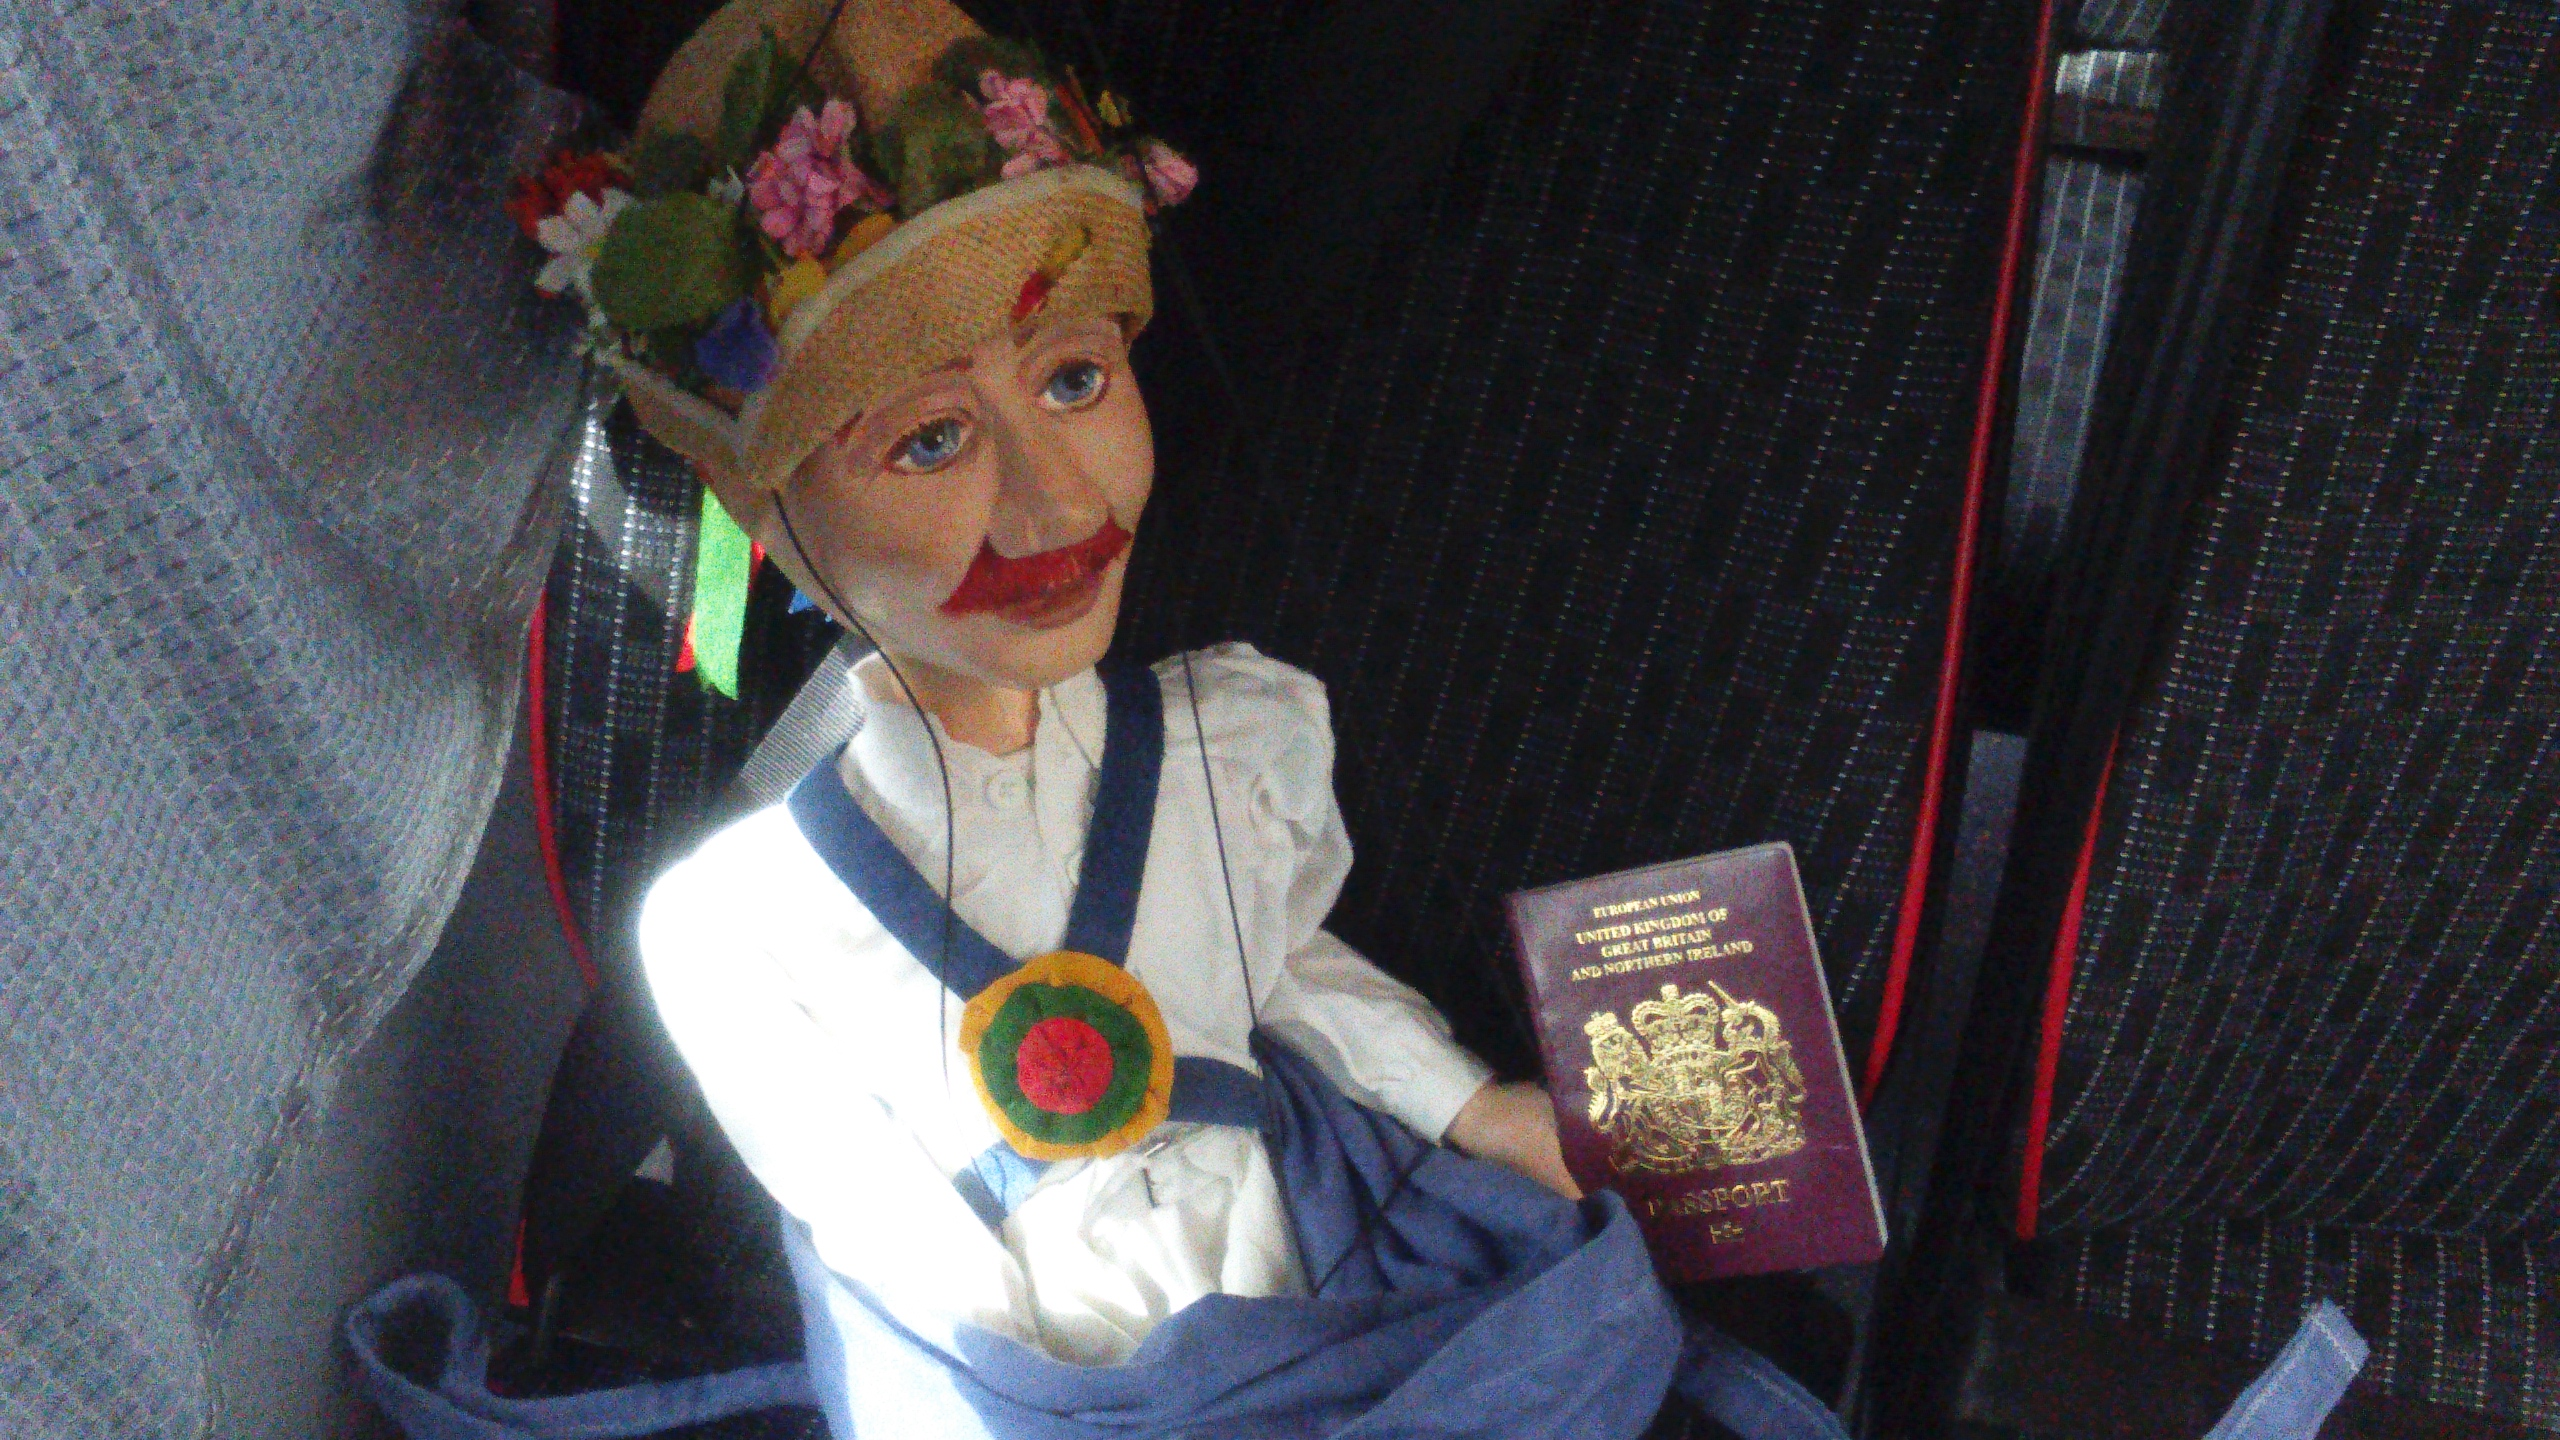 Little Pete travelling with Jockey with Green Horse Morris in Brussels - May 2016